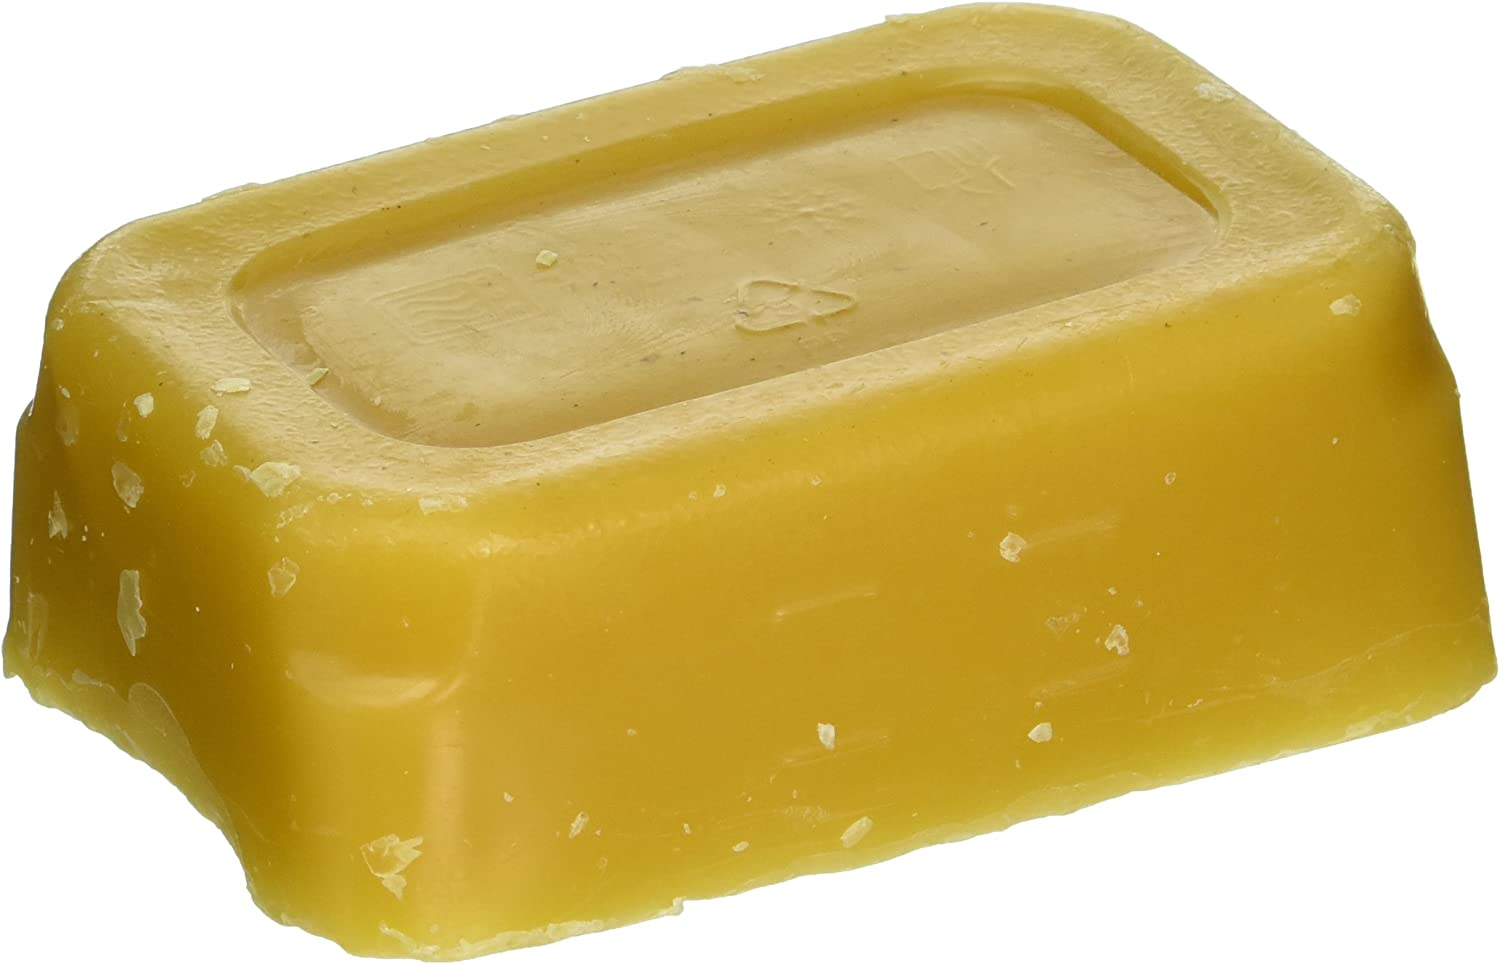 2 Furniture Lubrication  Beeswax blocks 100/% pure and natural beeswax